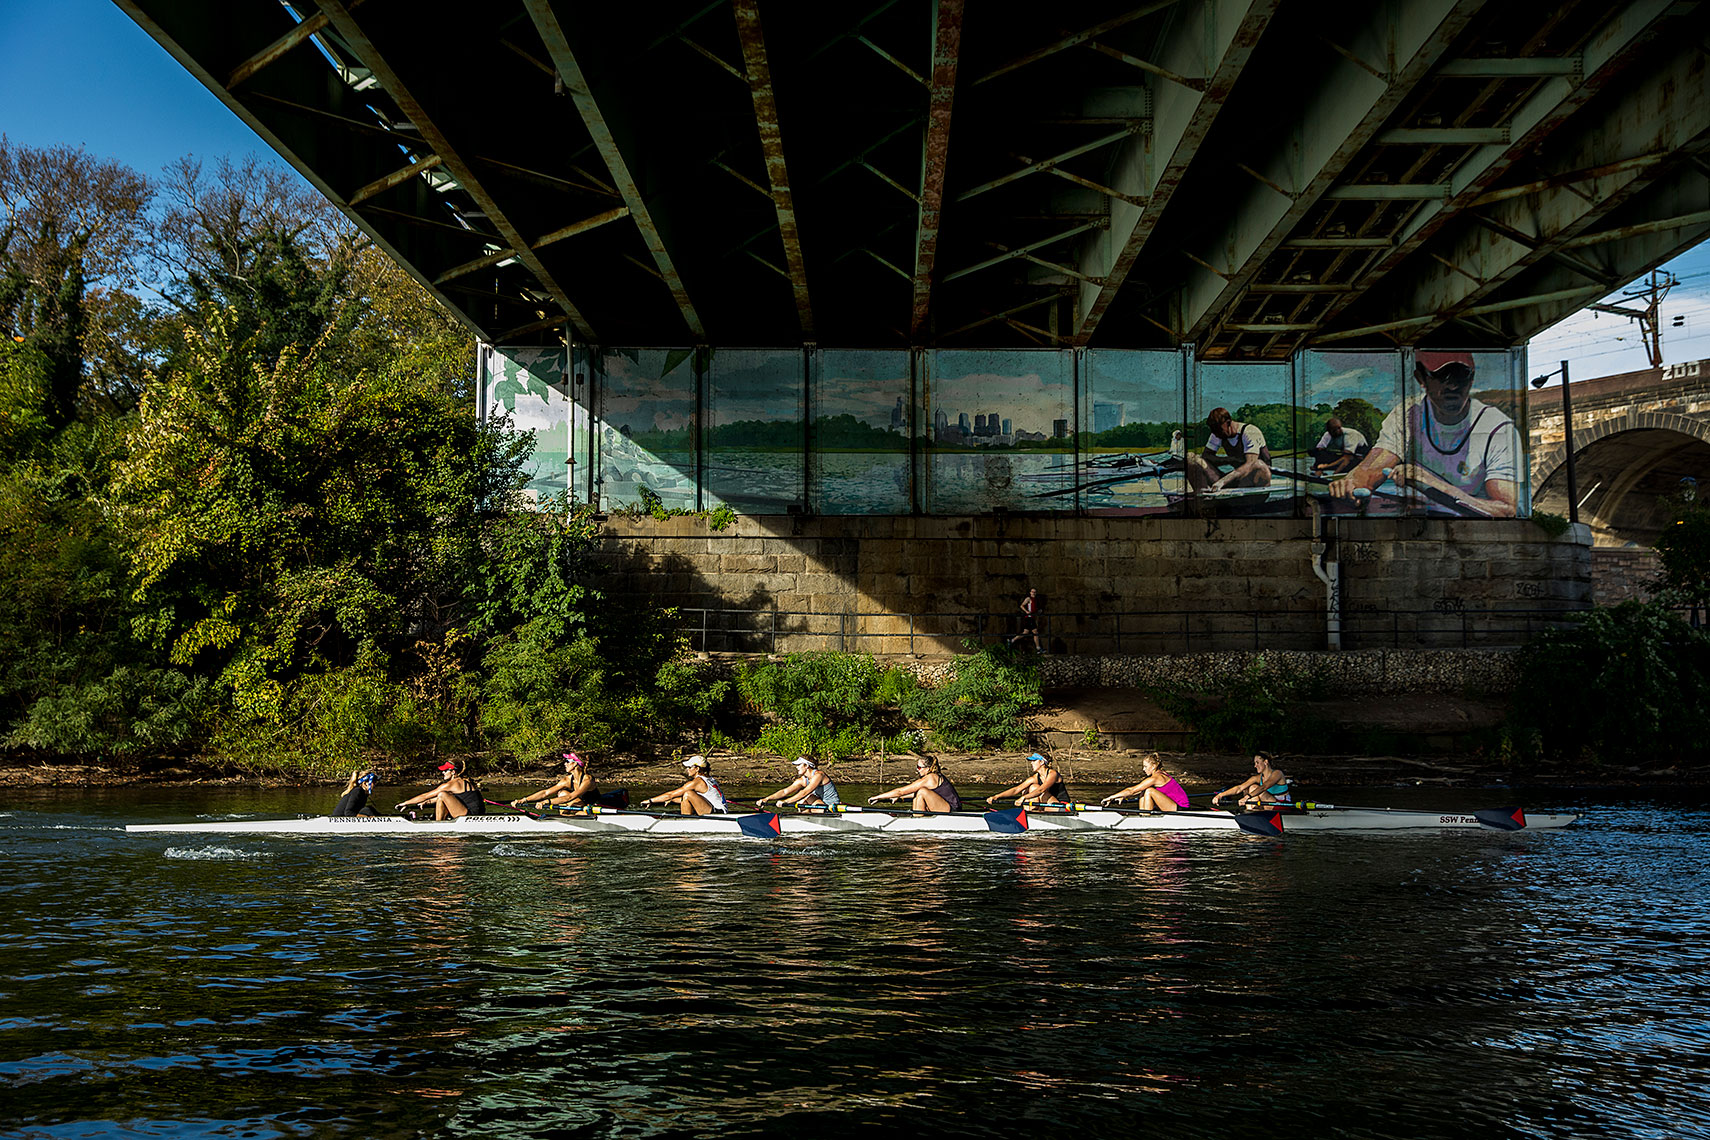 Sports Photographer STEVE BOYLE - Penn Rowing